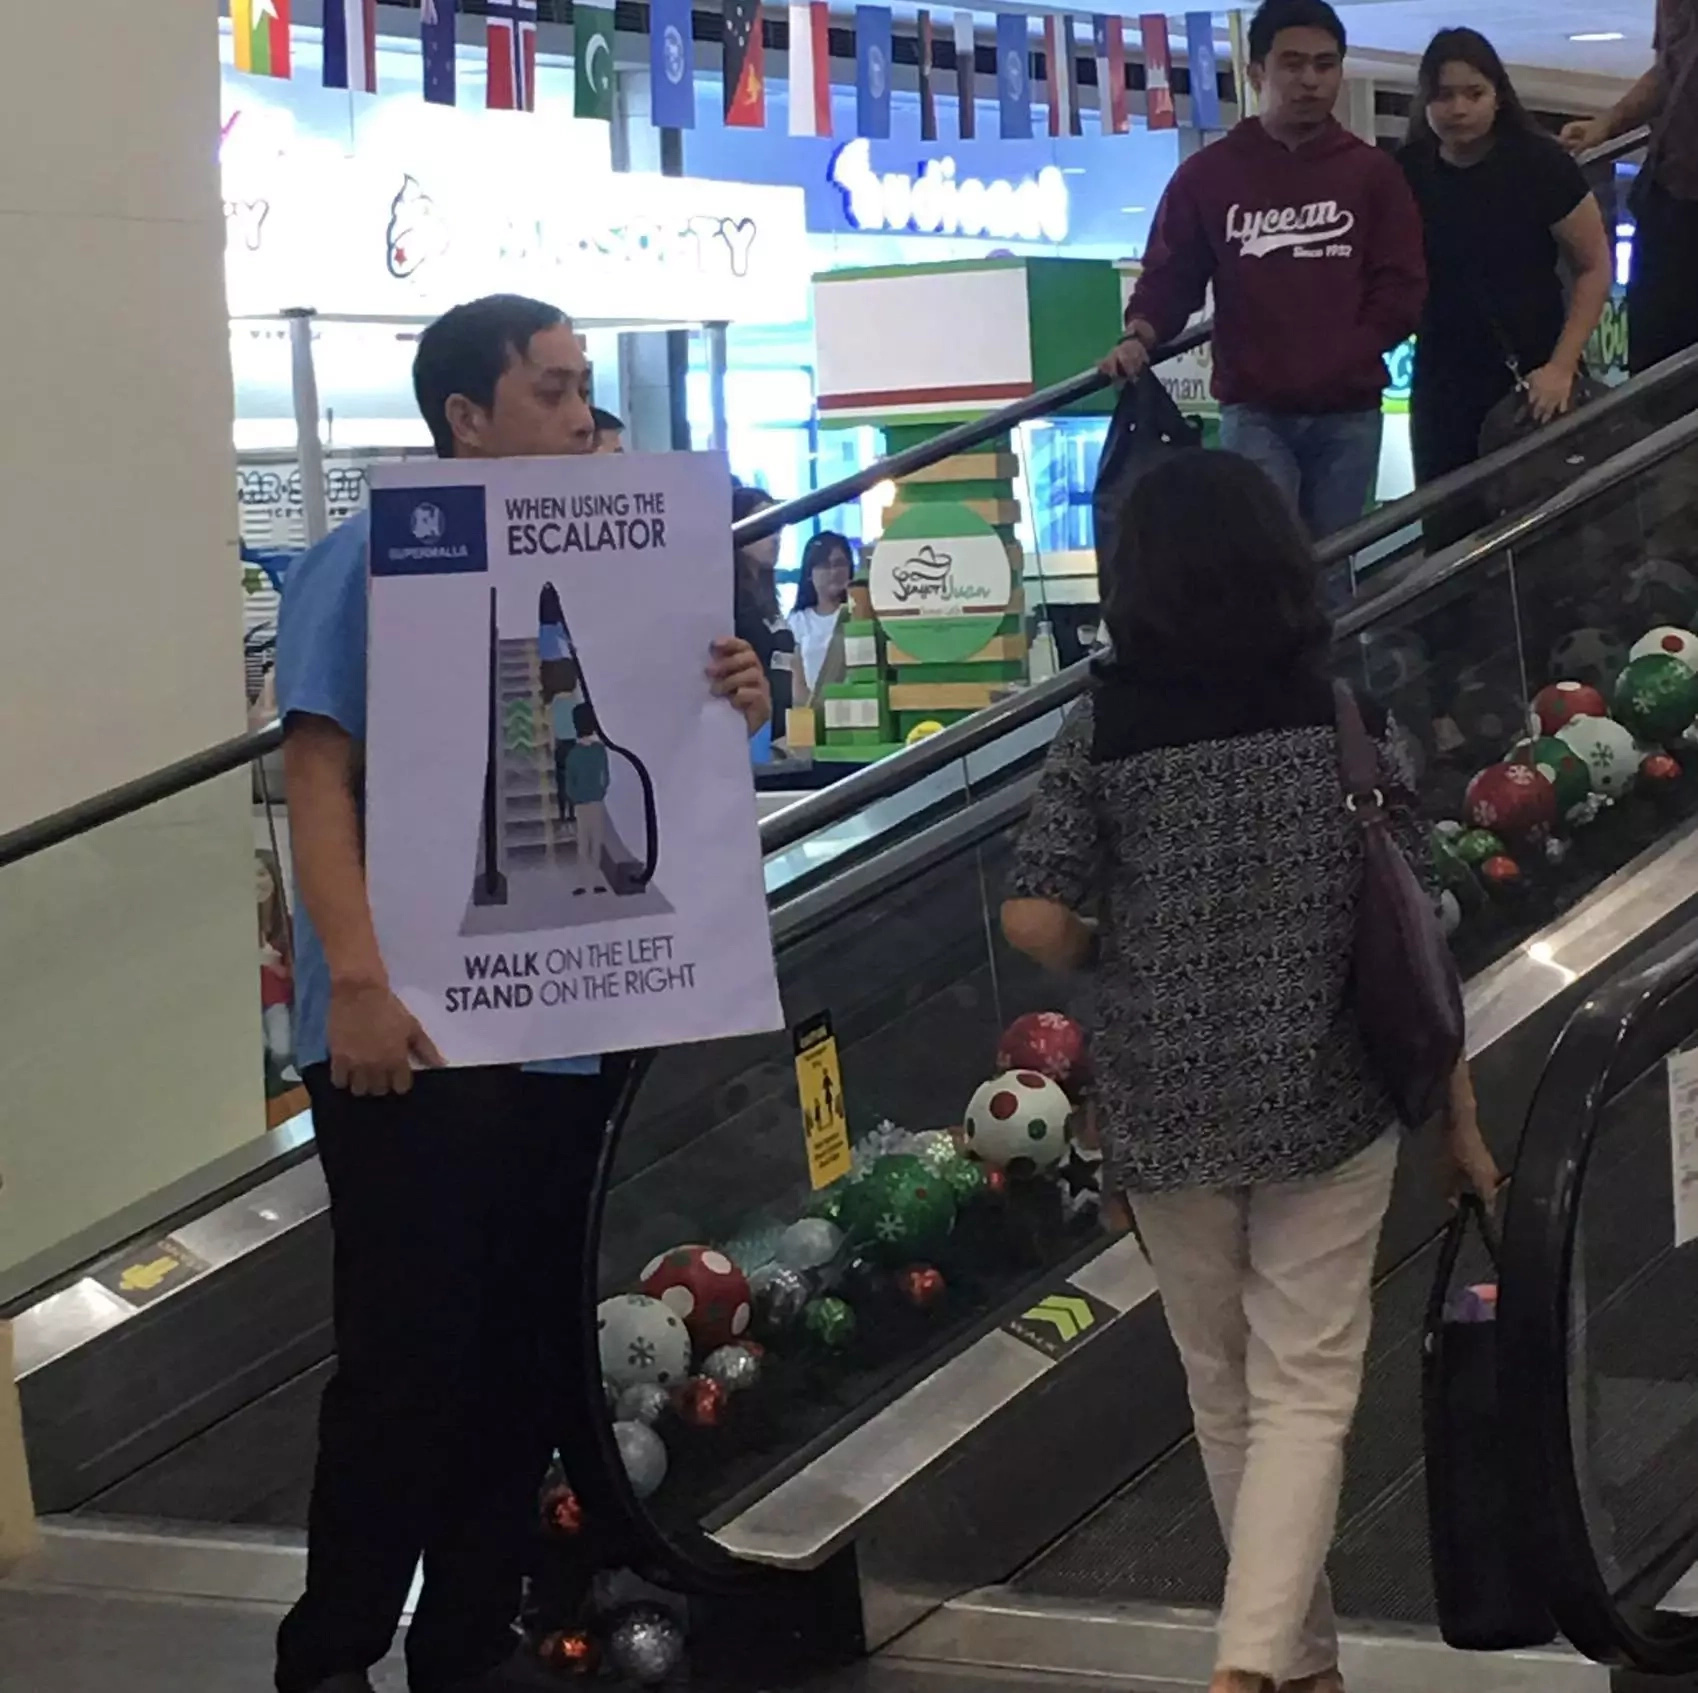 SM takes next step in pushing for escalator etiquette